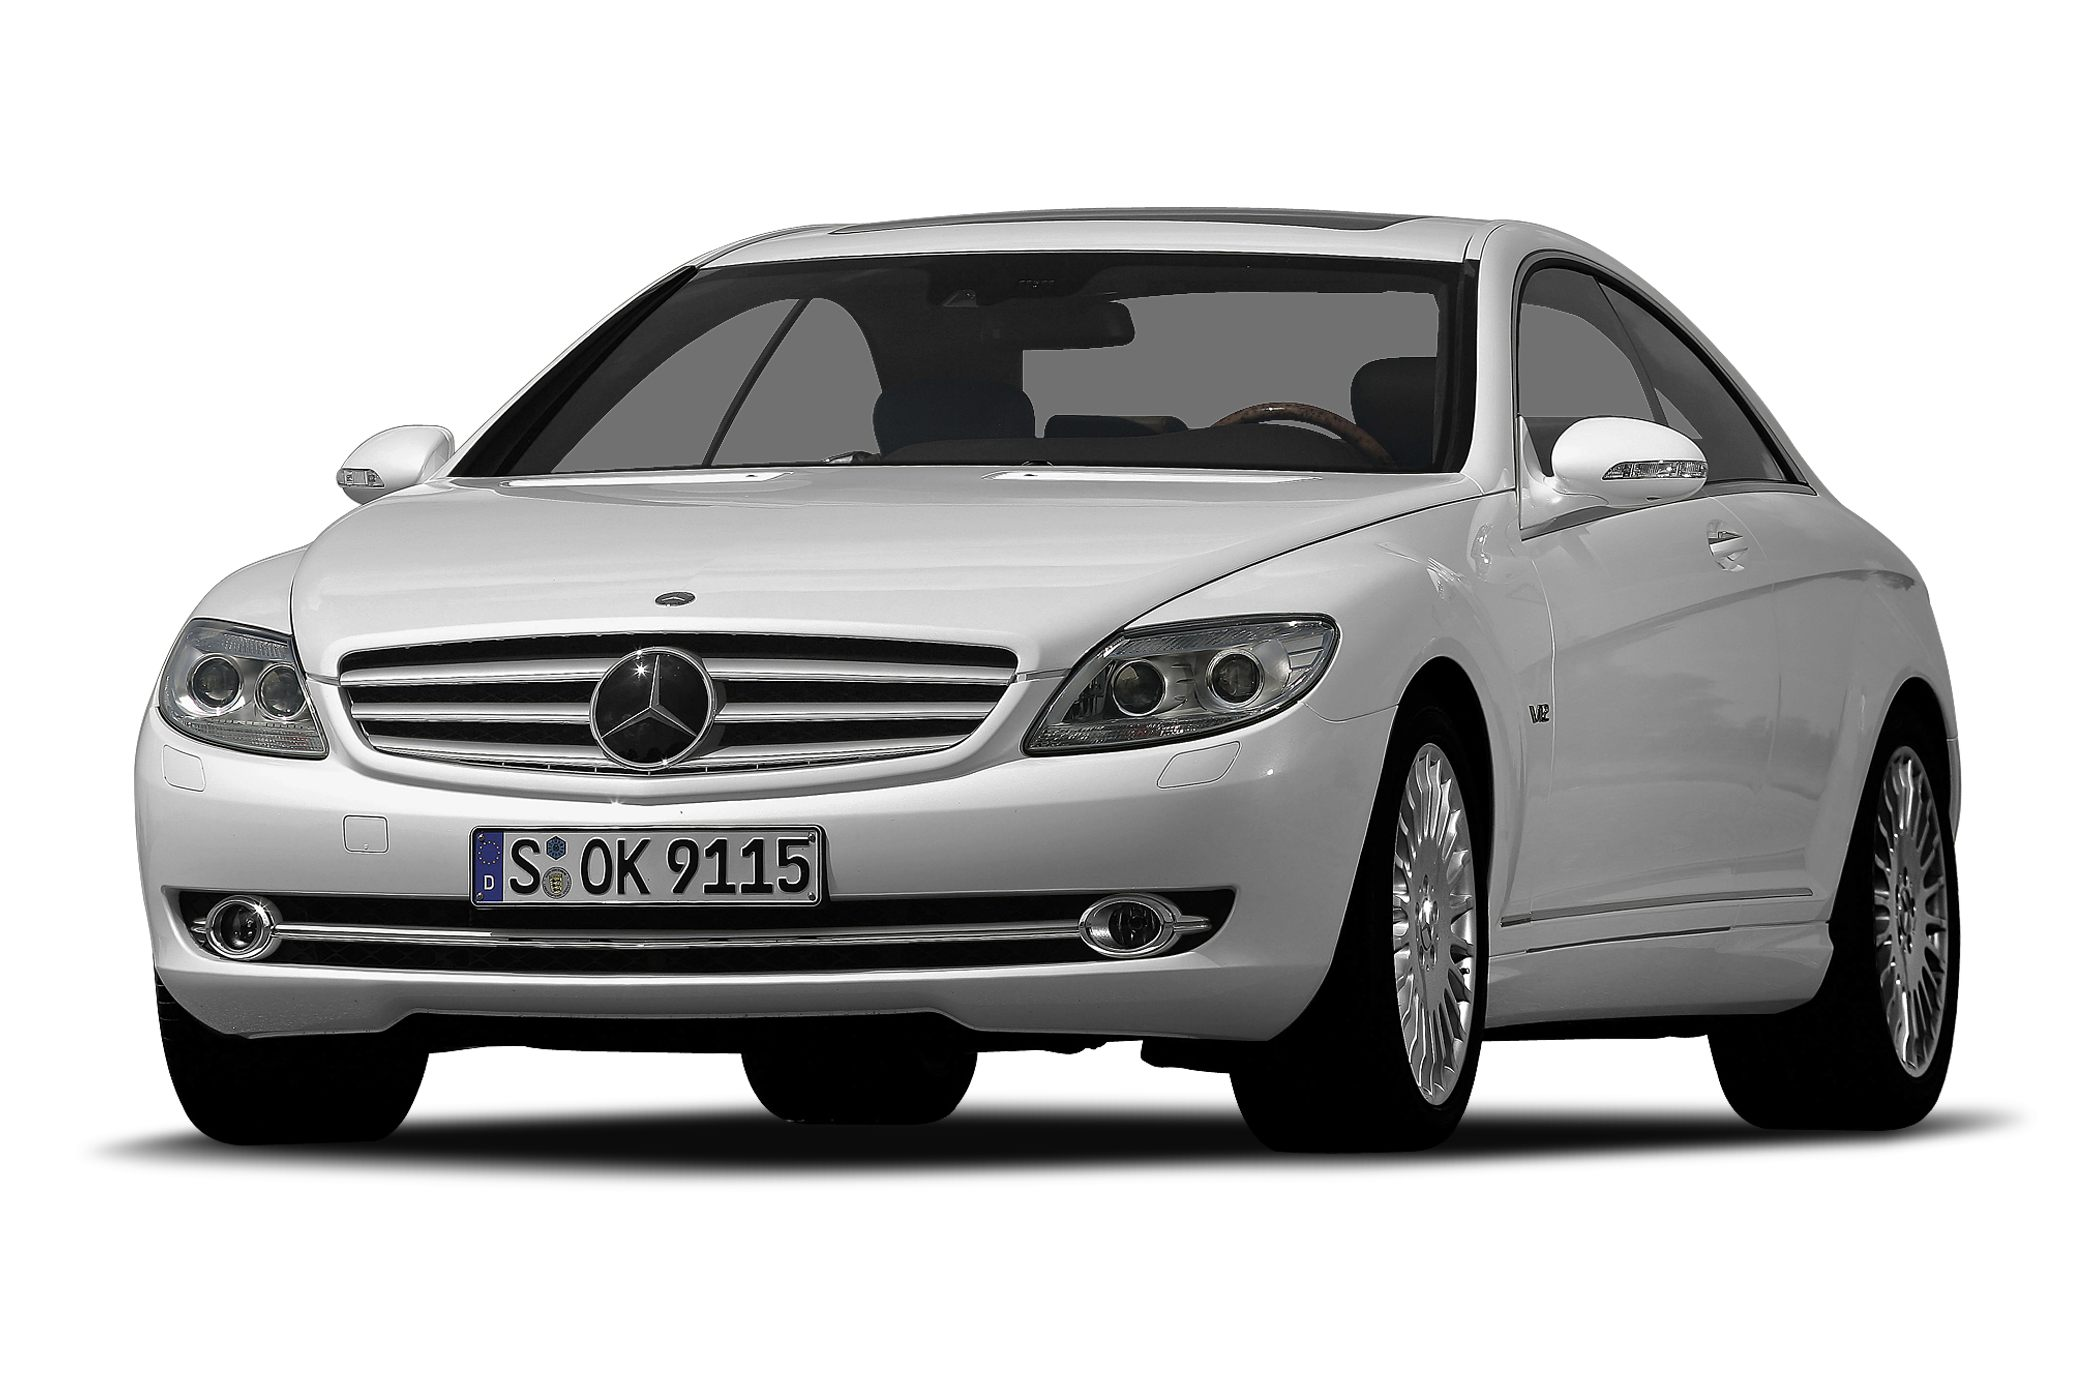 2008 Mercedes-Benz CL-Class CL600 Coupe for sale in Houston for $33,900 with 91,018 miles.